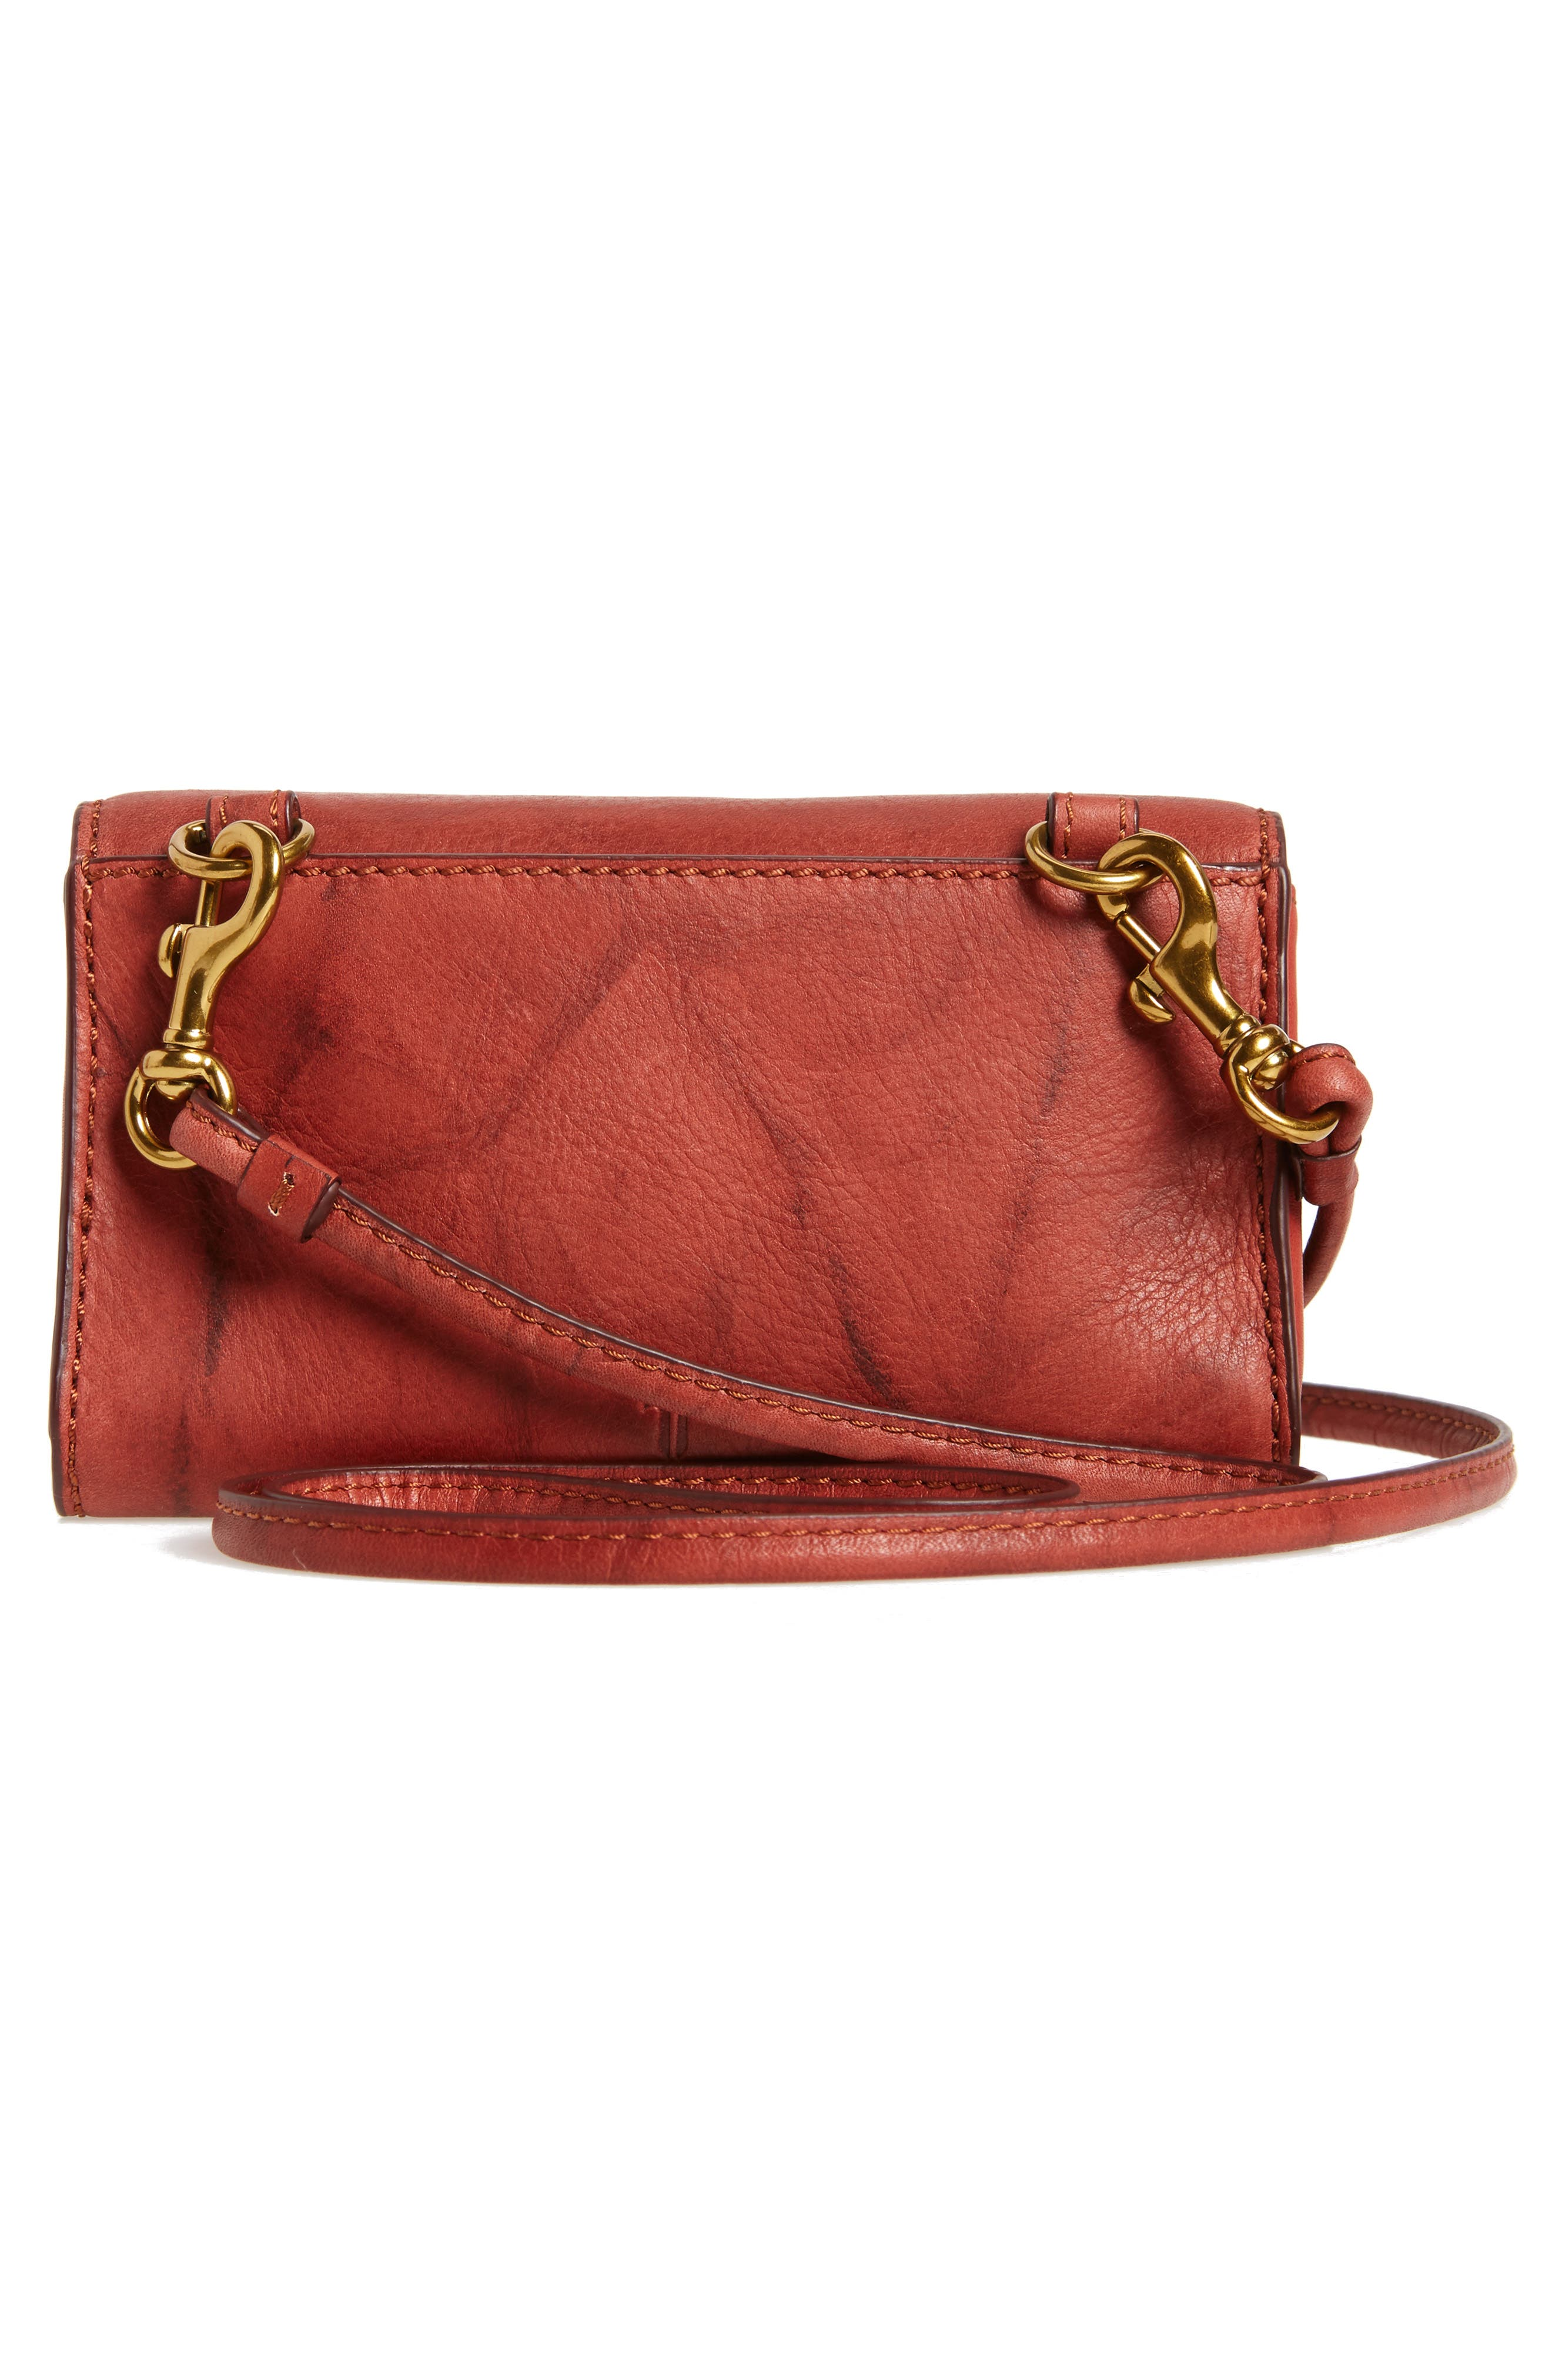 Campus Rivet Leather Smartphone Wallet with Crossbody Strap,                             Alternate thumbnail 4, color,                             Burnt Red